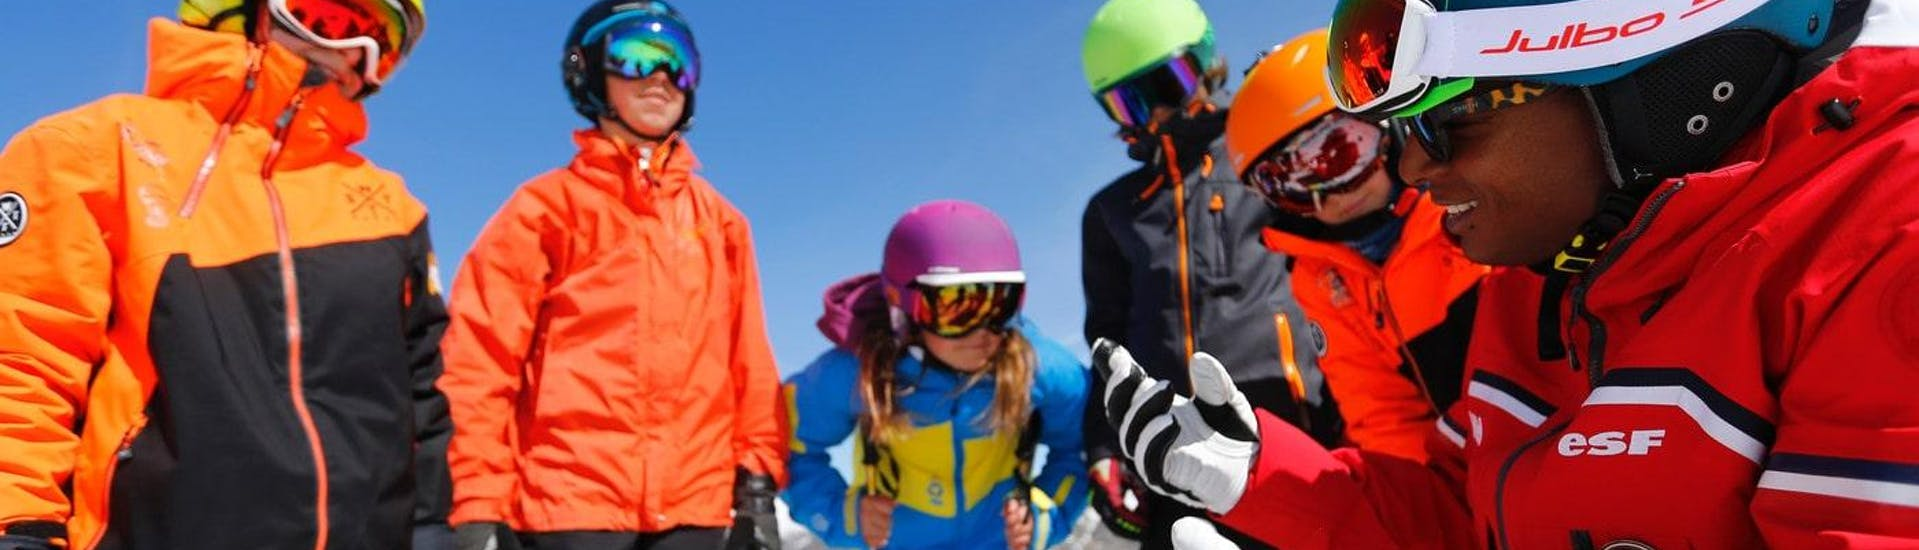 """Teens are gathered around their ski instructor from the ski school ESF Alpe d'Huez before their Ski Lessons for Teens """"Team Rider"""" (13-17 y.) - All Levels."""